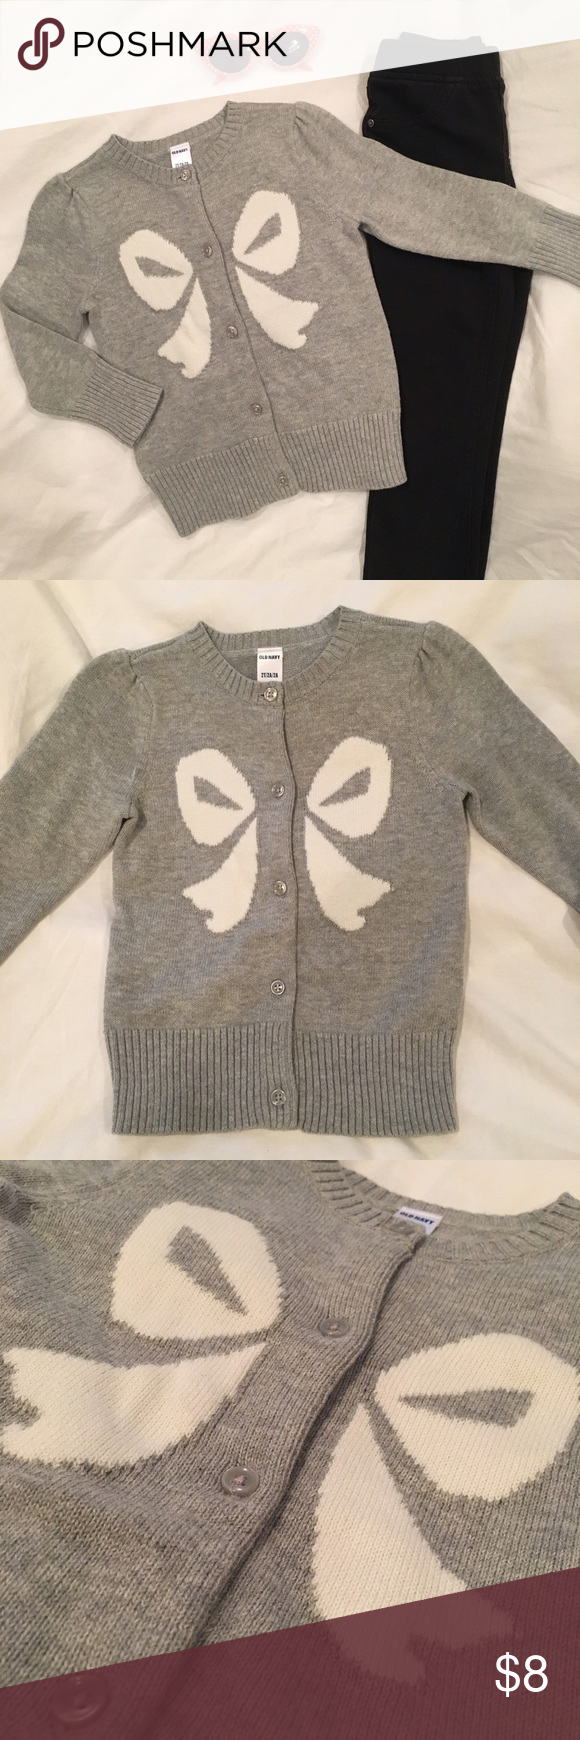 Old Navy Toddler Girl Bow Cardigan Grey/White 2T NWT • Old Navy Toddler Girl Bow Cardigan Grey/White Size 2T Old Navy Shirts & Tops Sweaters